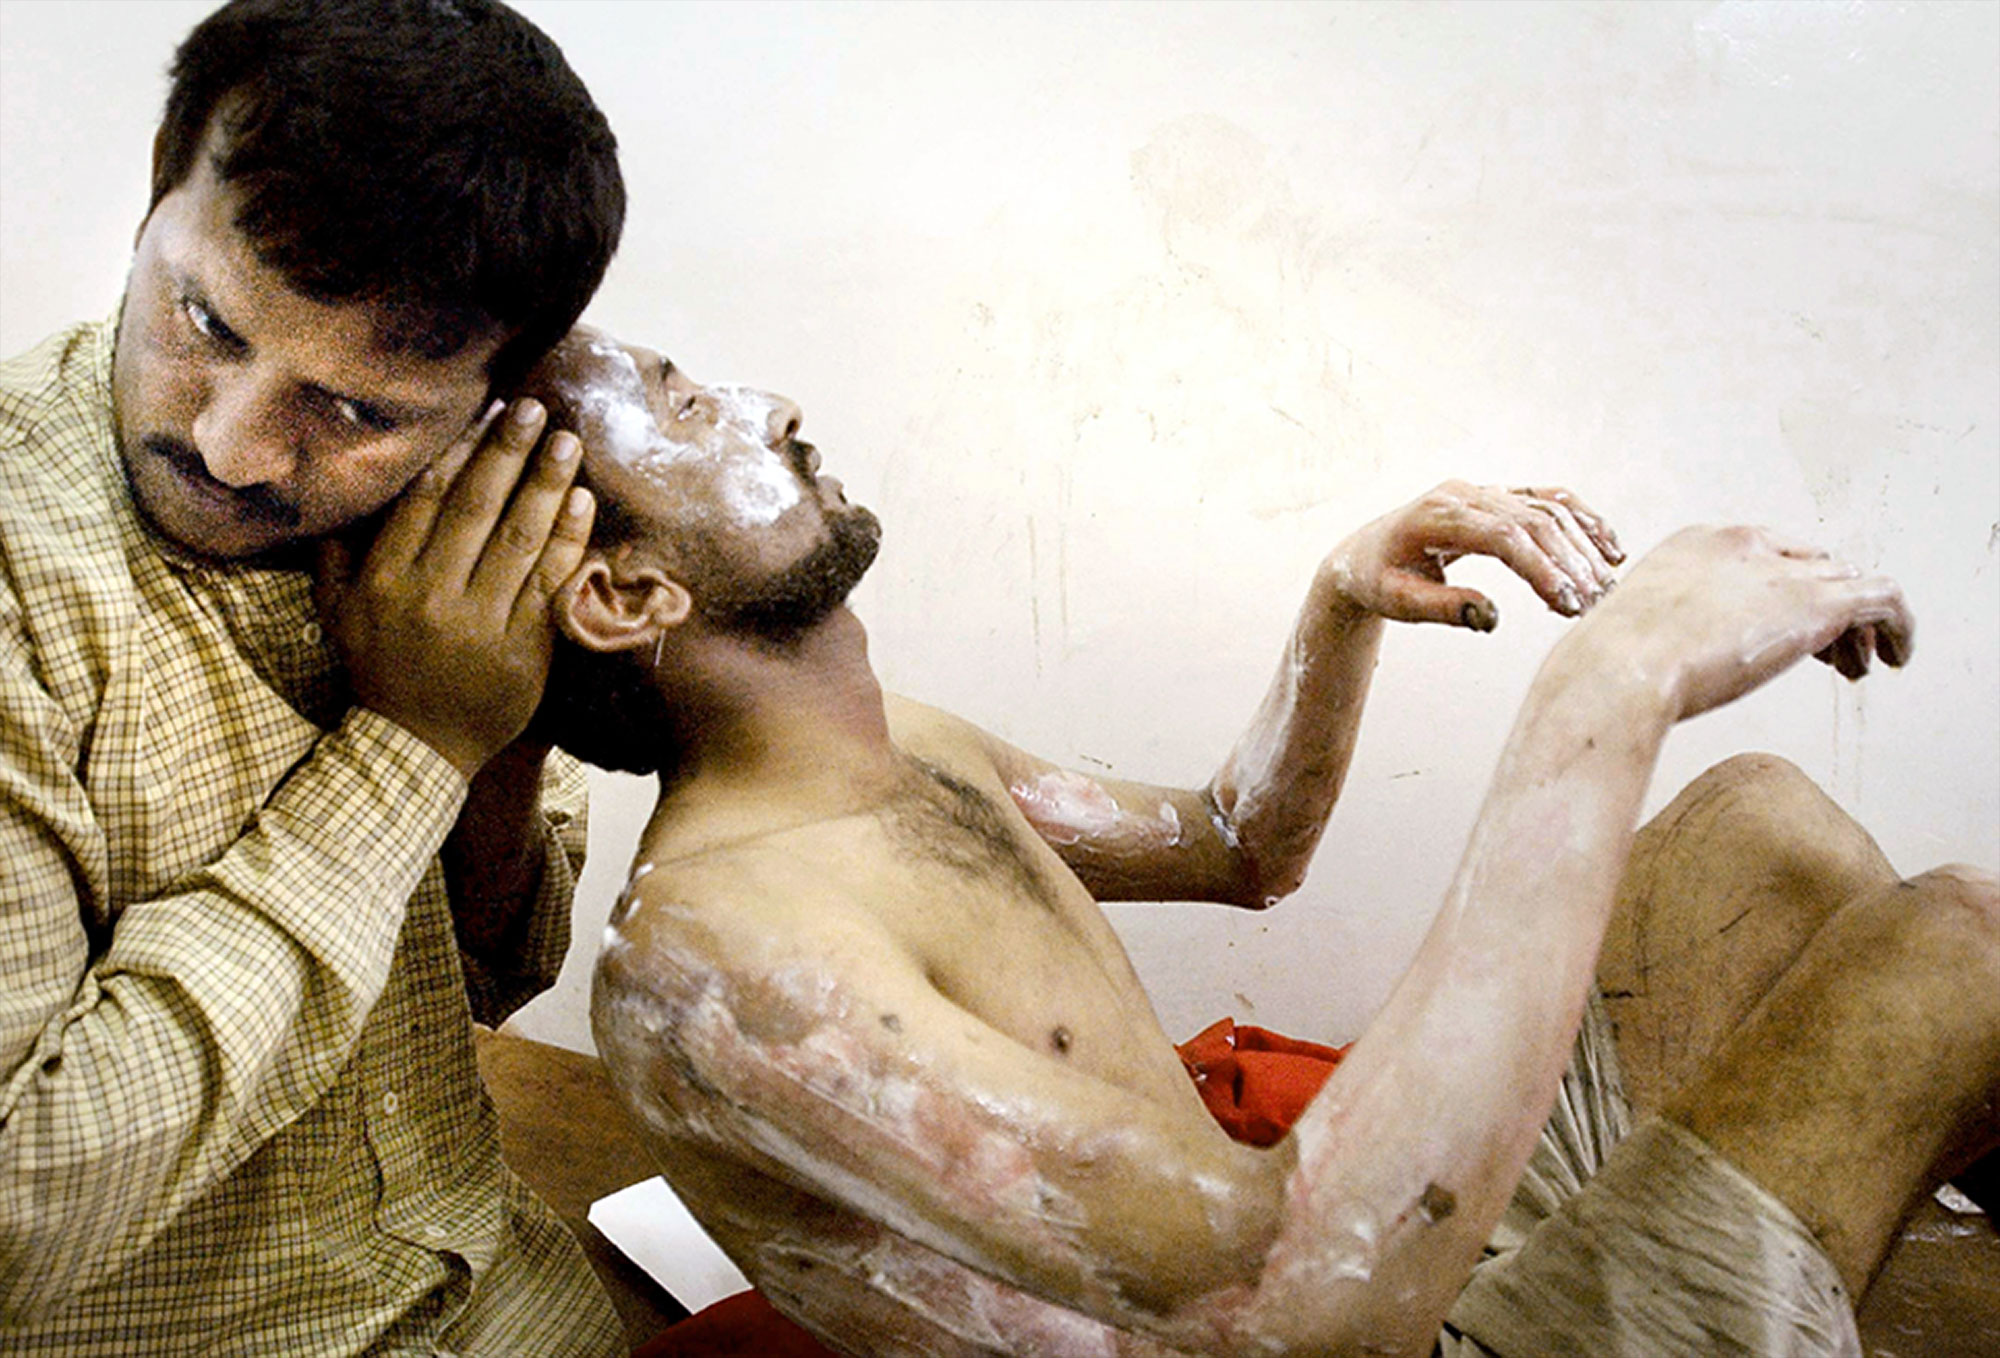 Mohammad Hussein, 26, right, is held by his brother, Alla Asir, after he was severely burned by an exploding fuel storage tank that he was looting on April 18, 2003. With no functional police and the country's infrastructure in ruins, Iraqi citizens took to looting all public facilities.